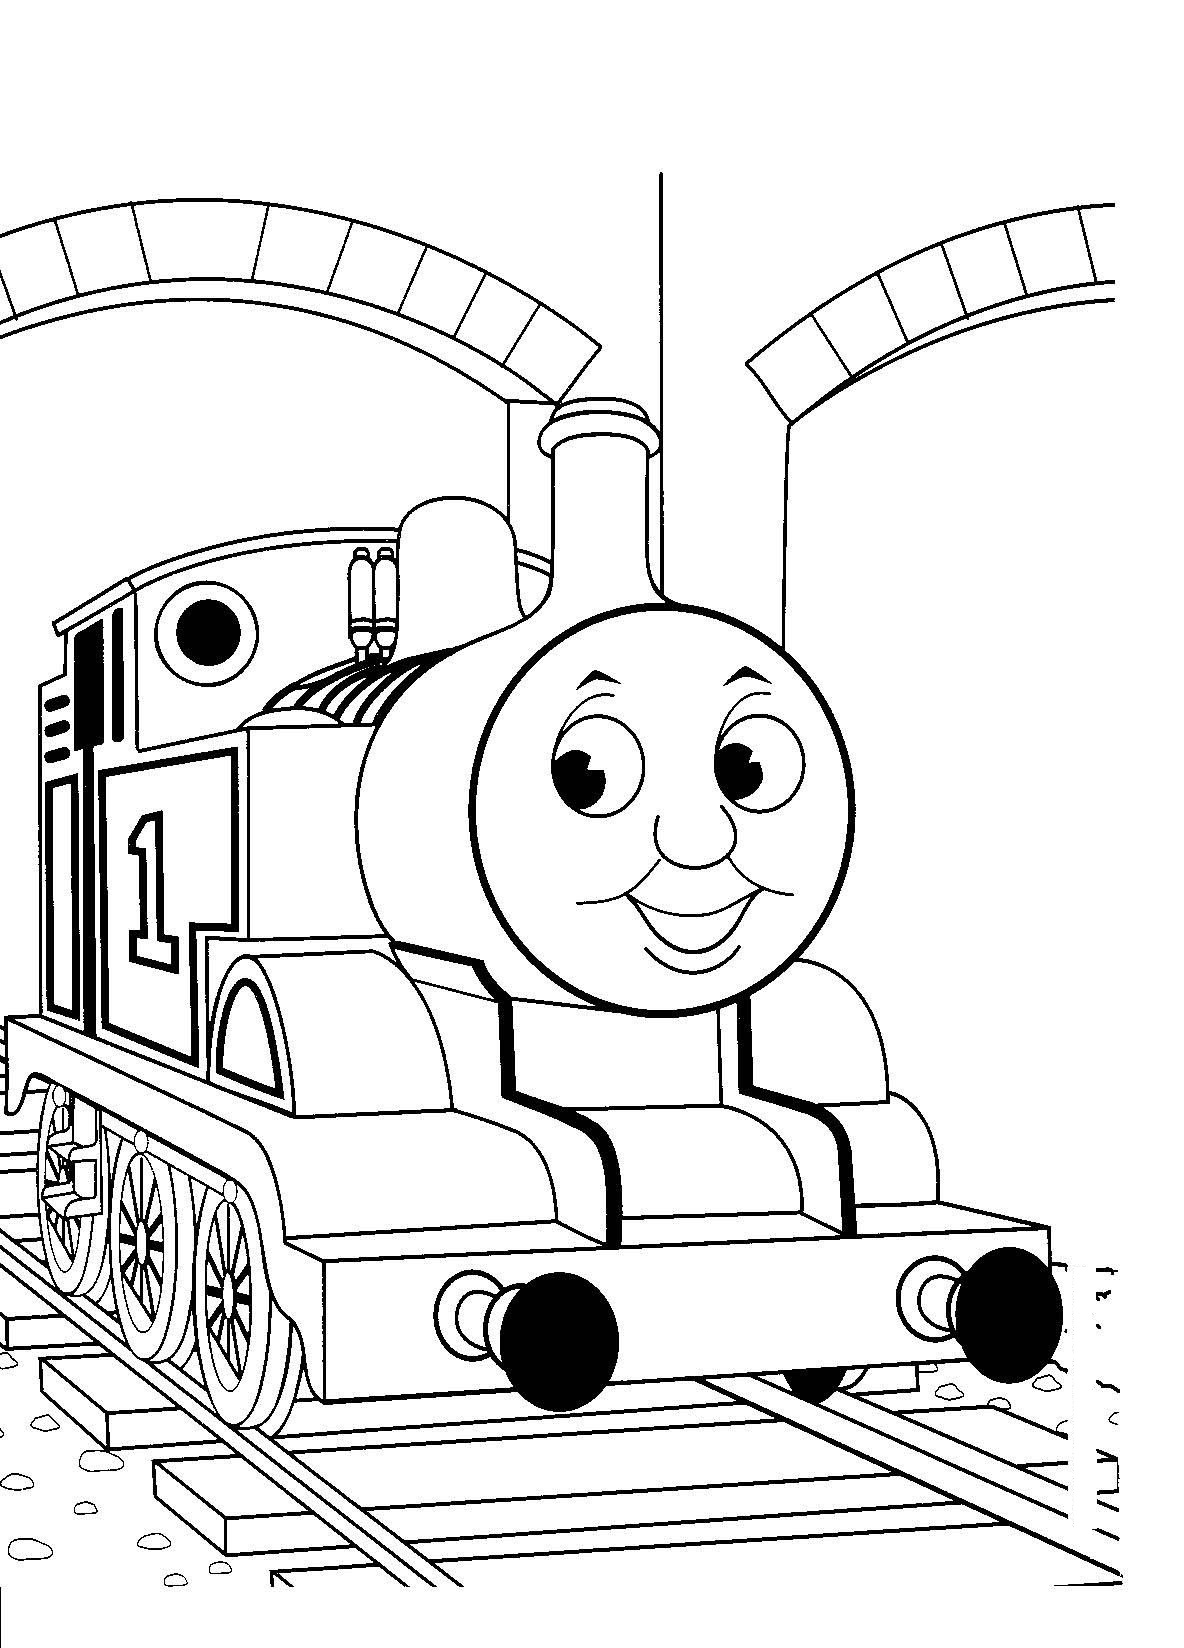 Free coloring pages com printable - Free Printable Thomas The Train Coloring Pages